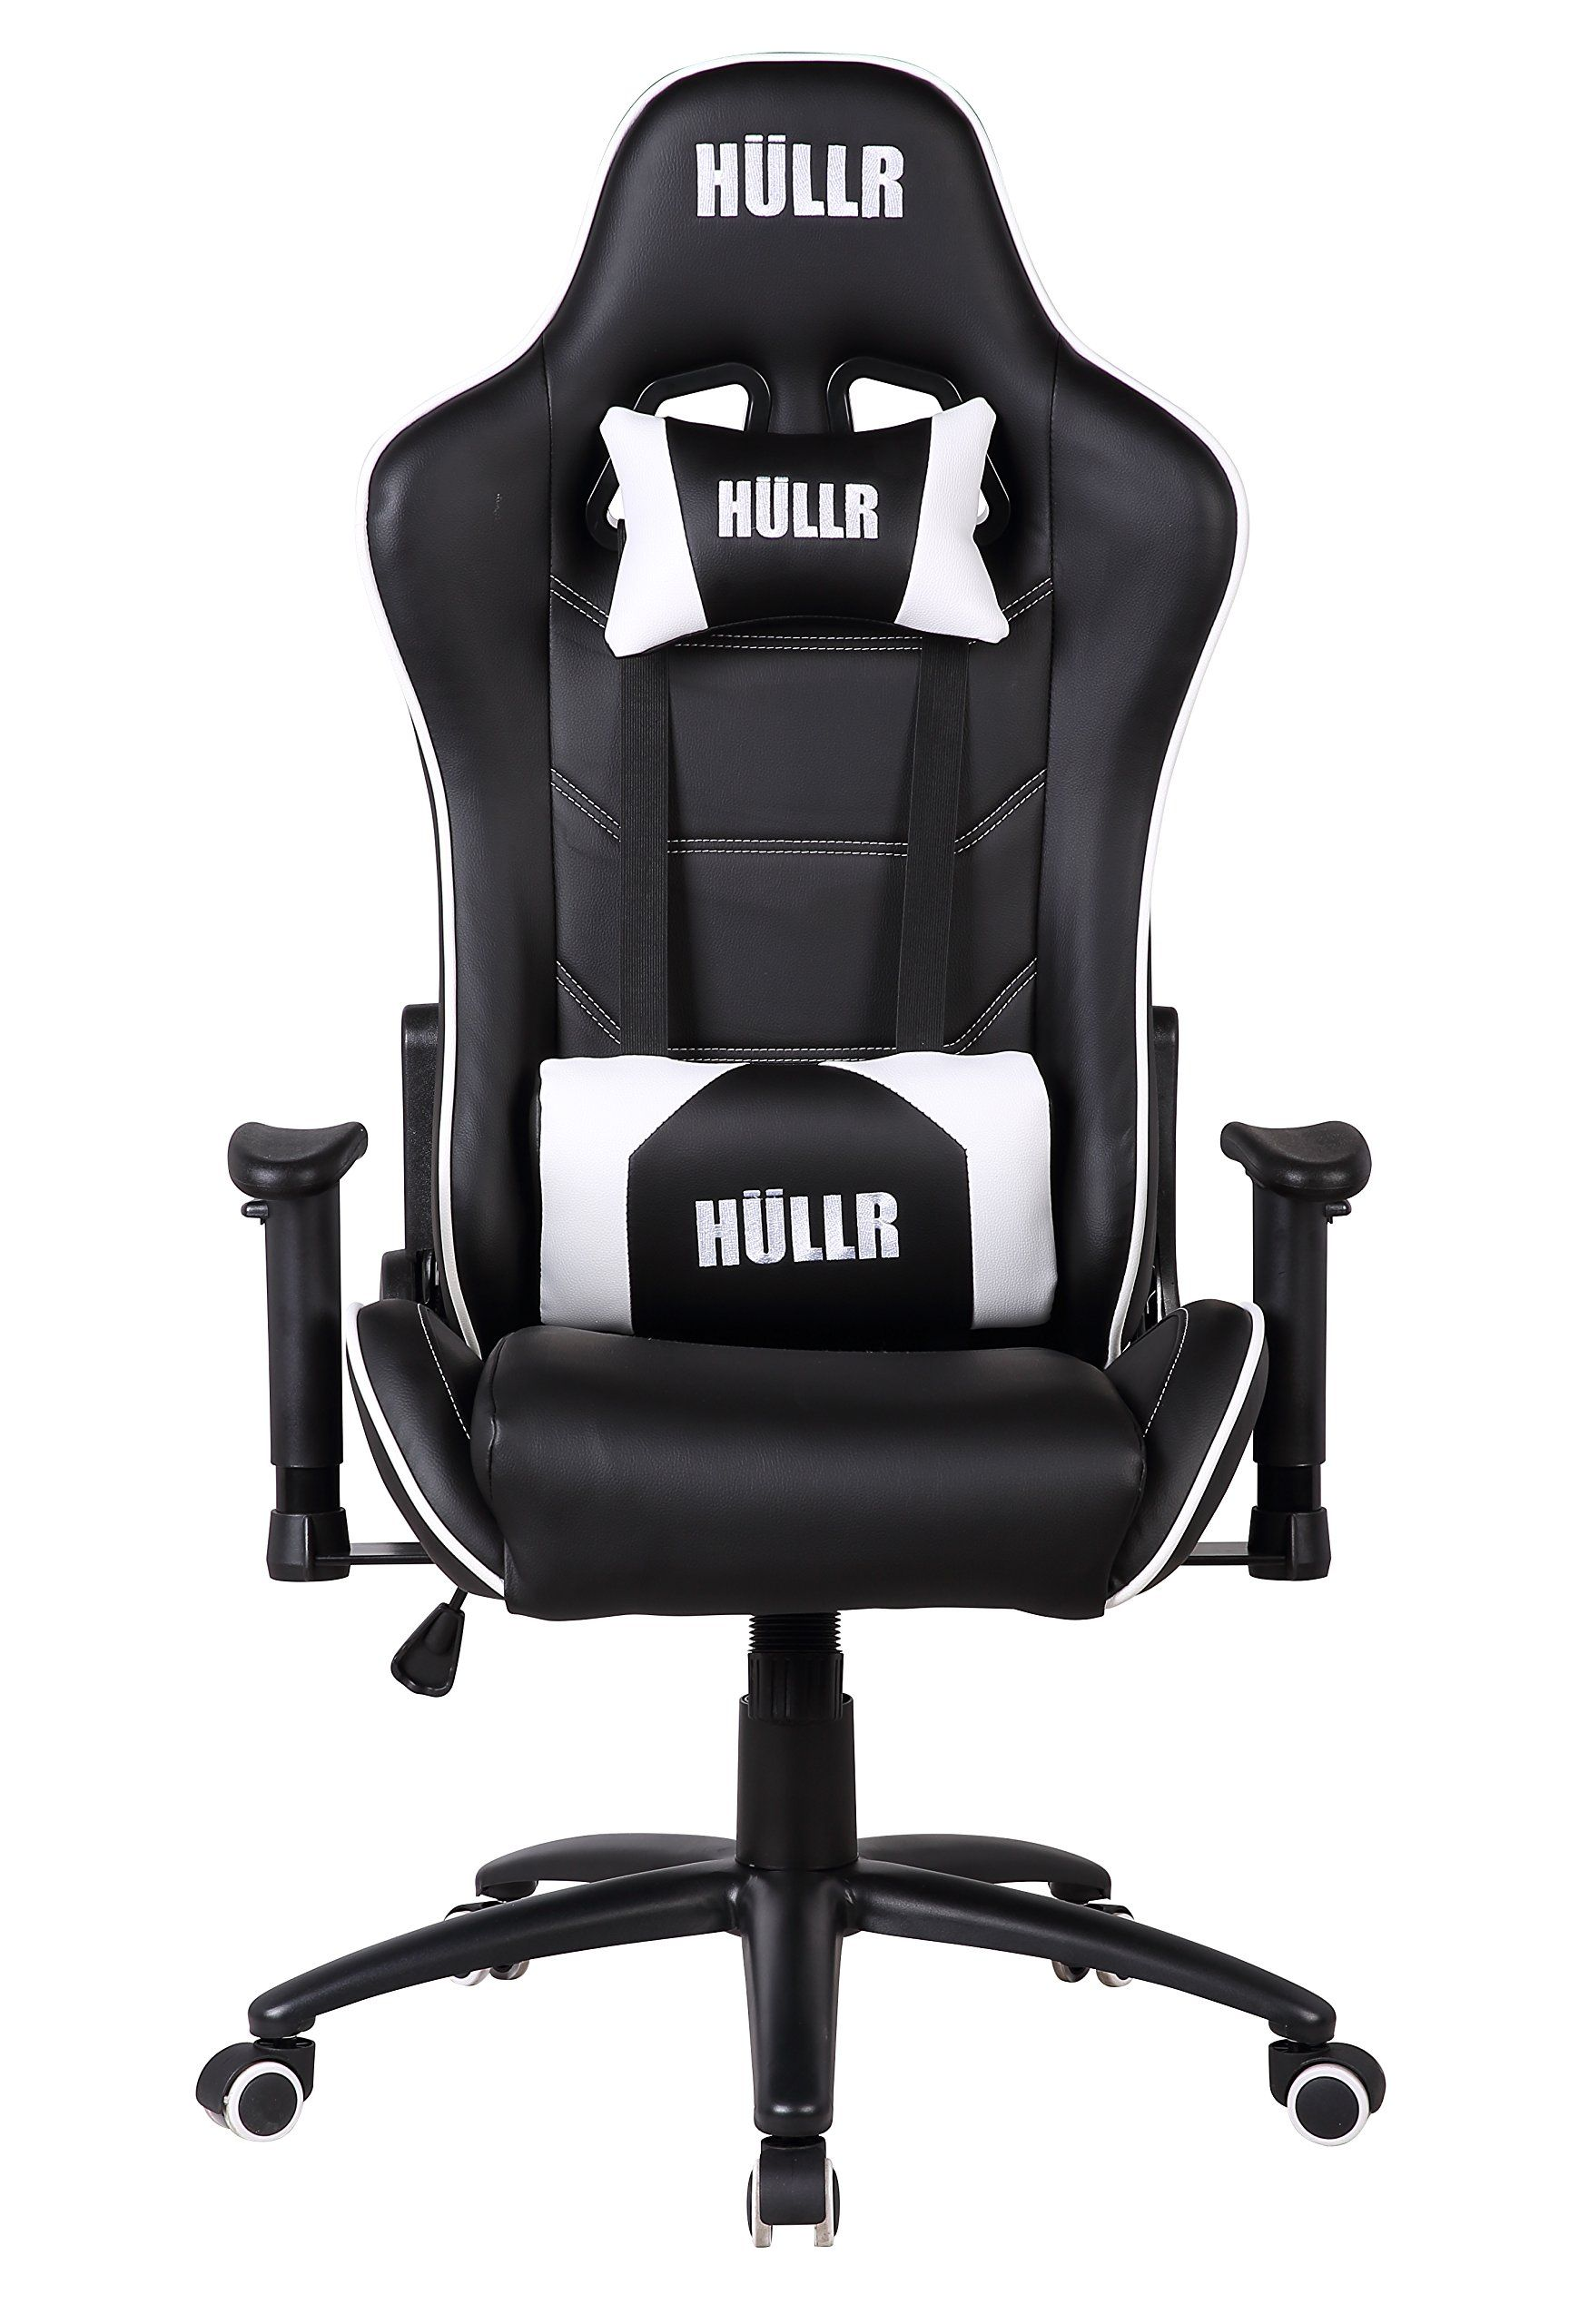 HULLR Gaming Racing puter fice Chair Executive High Back GT